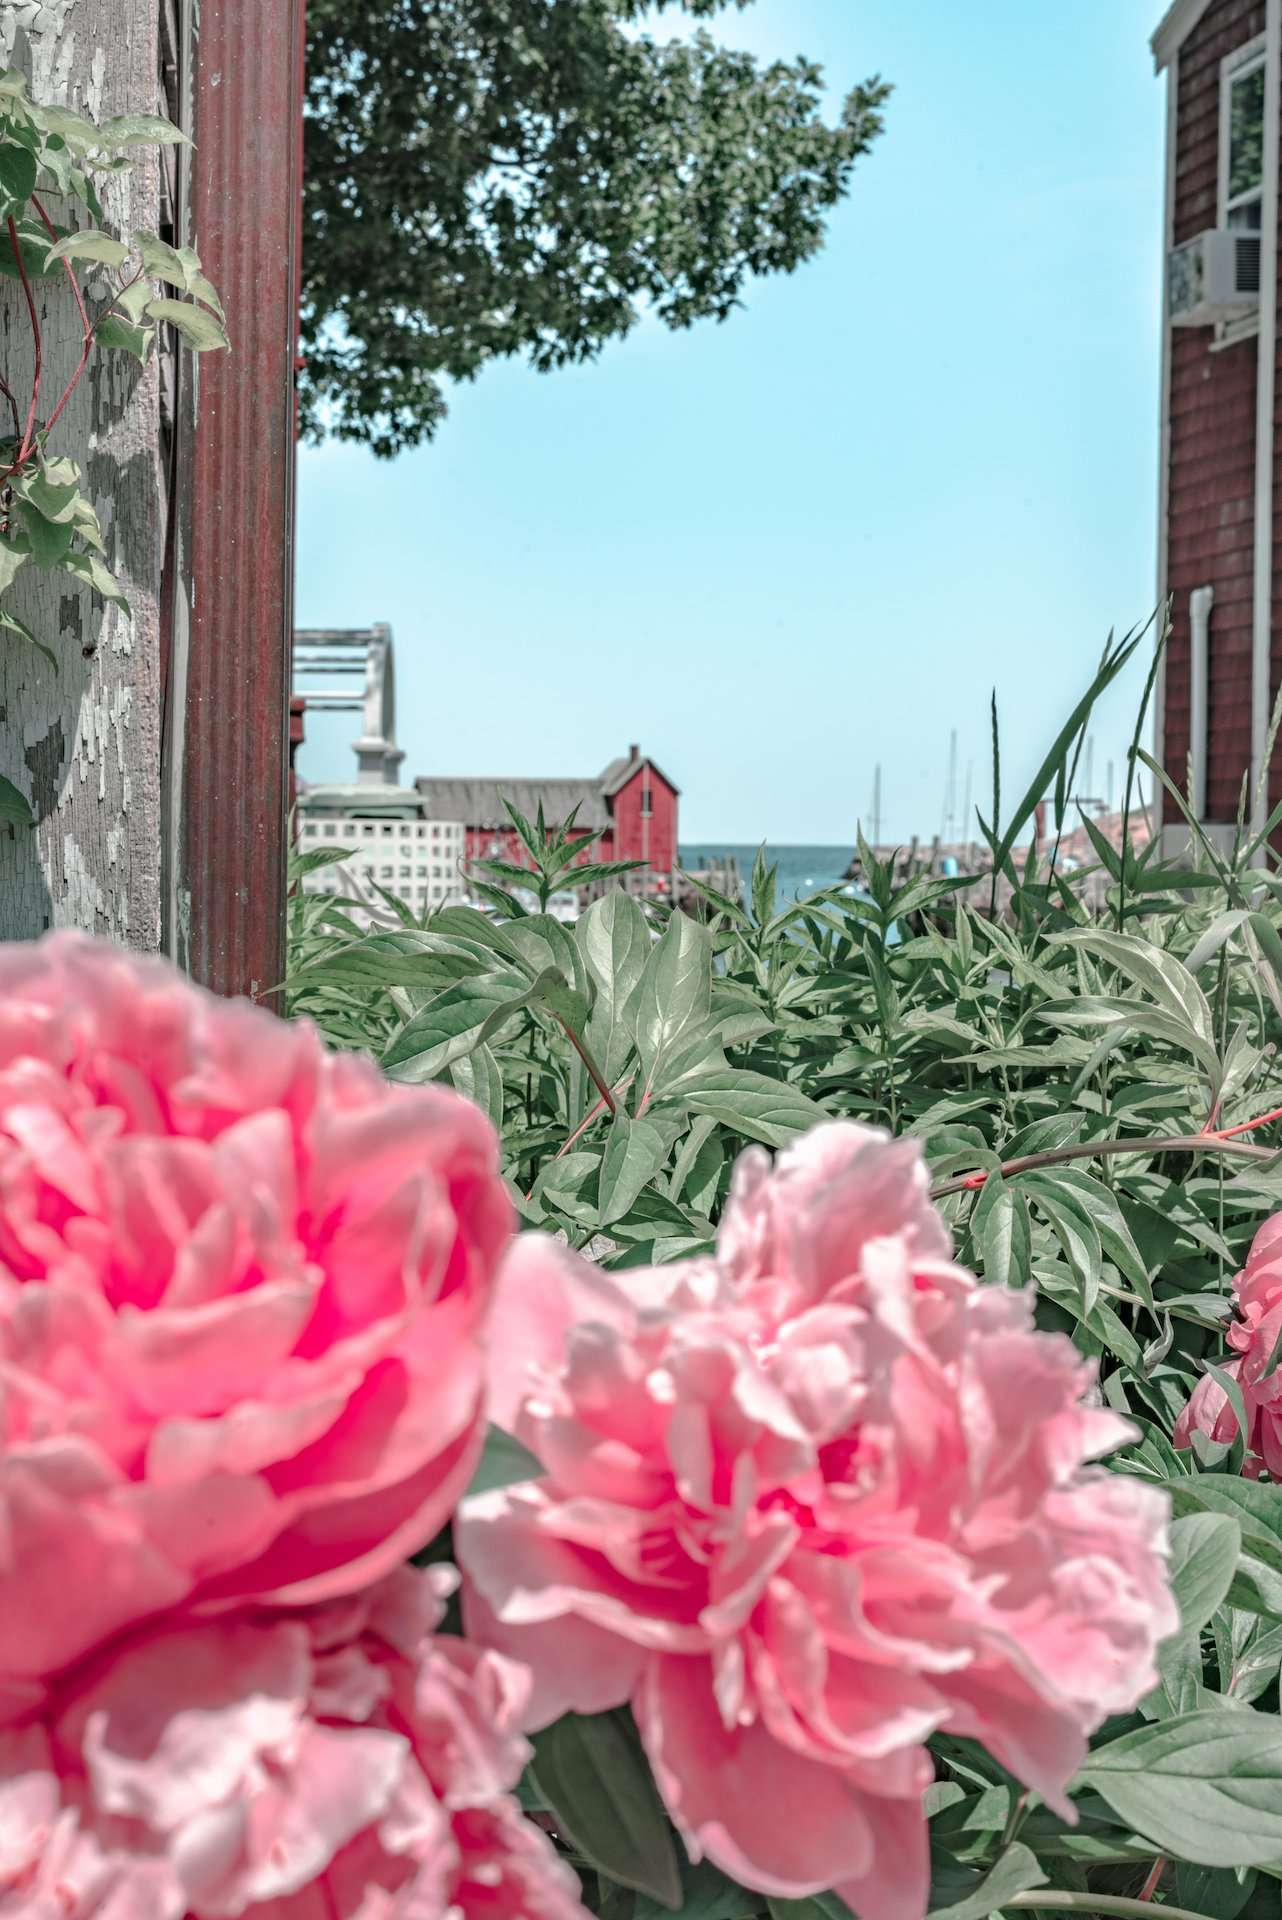 Motif #1 surrounded by flowers in Rockport